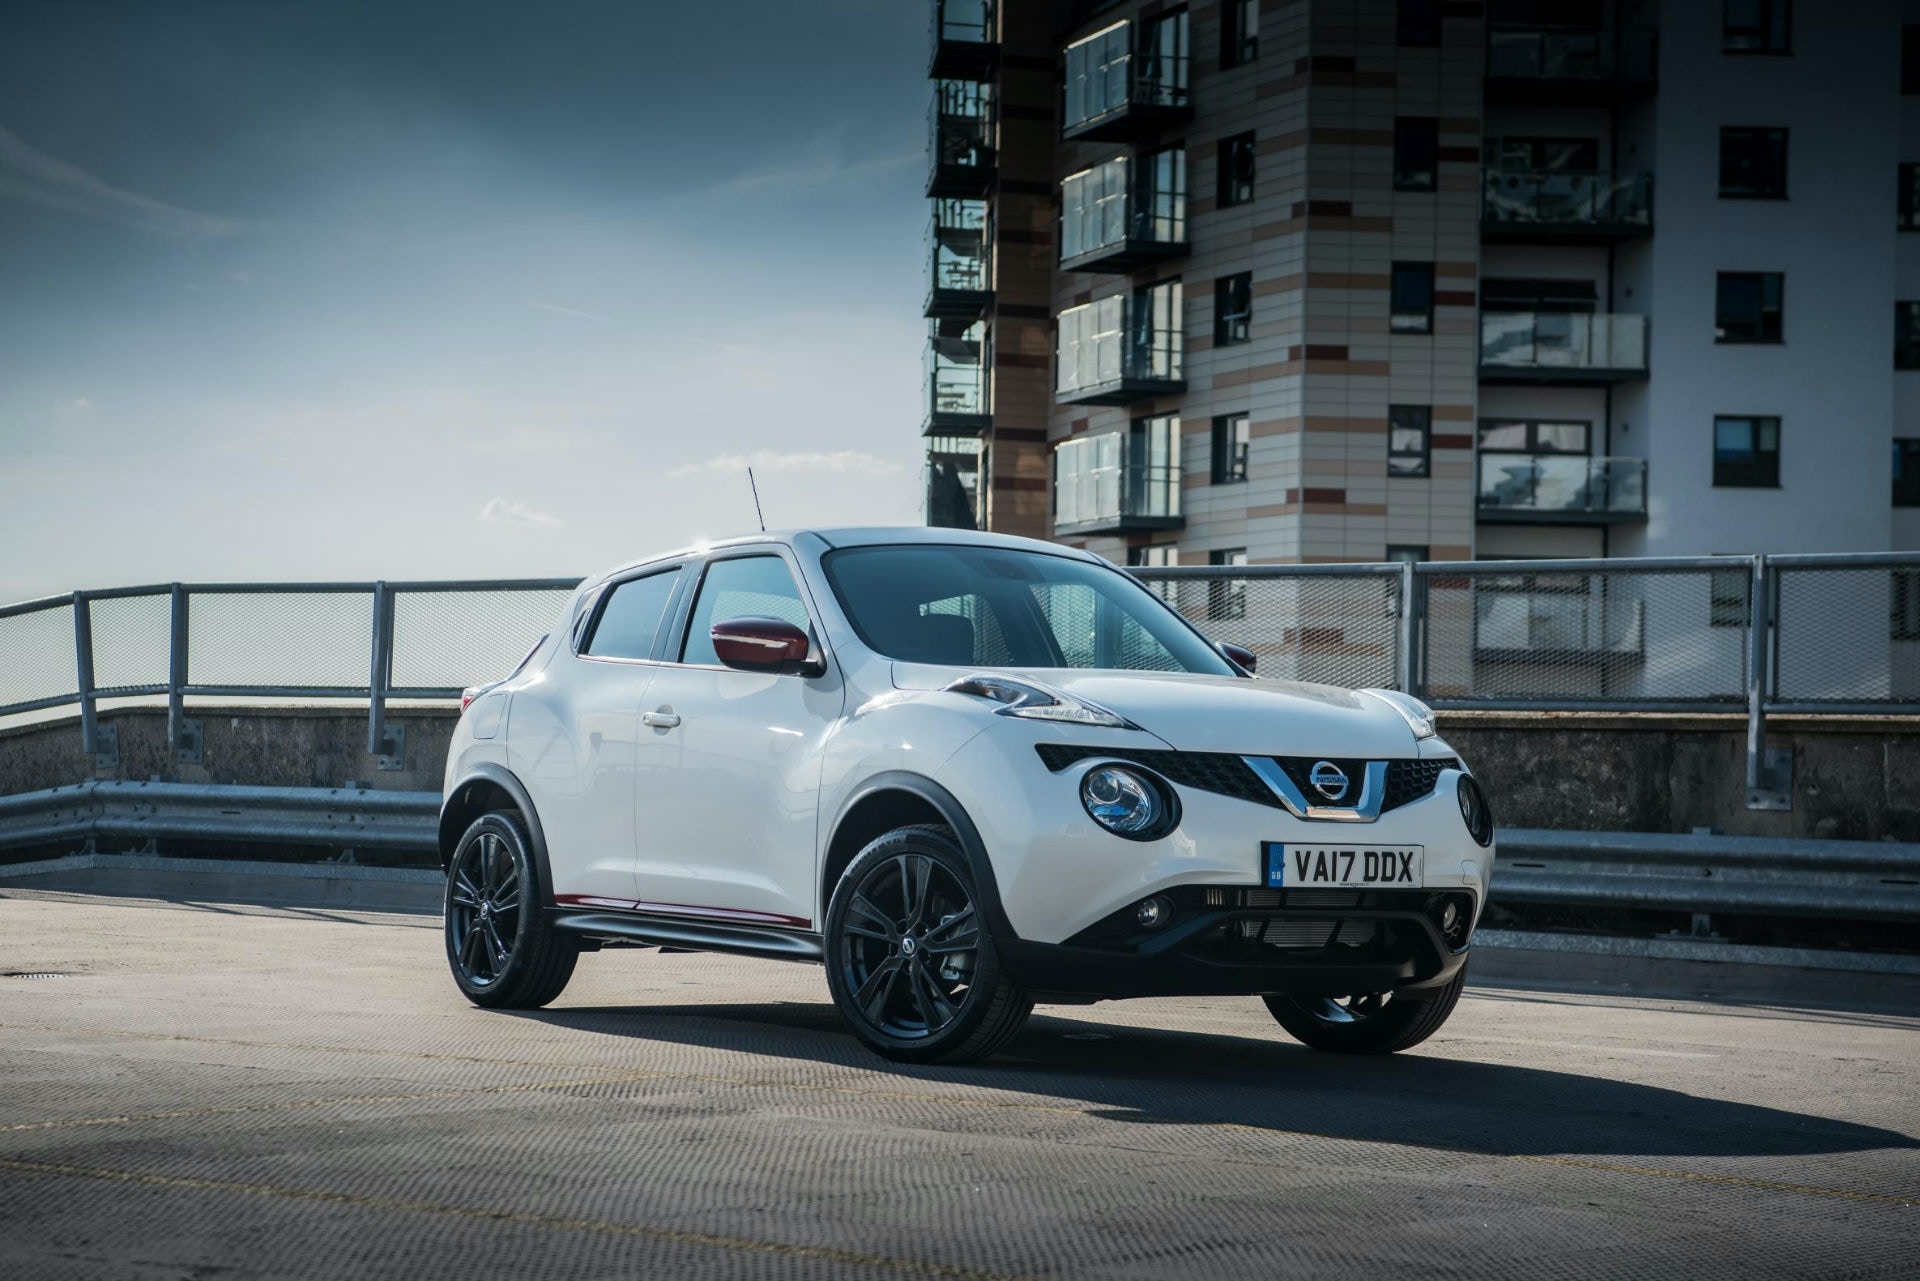 It might not be to everyones taste but the Nissan Juke is a great crossover for less than £10,000.